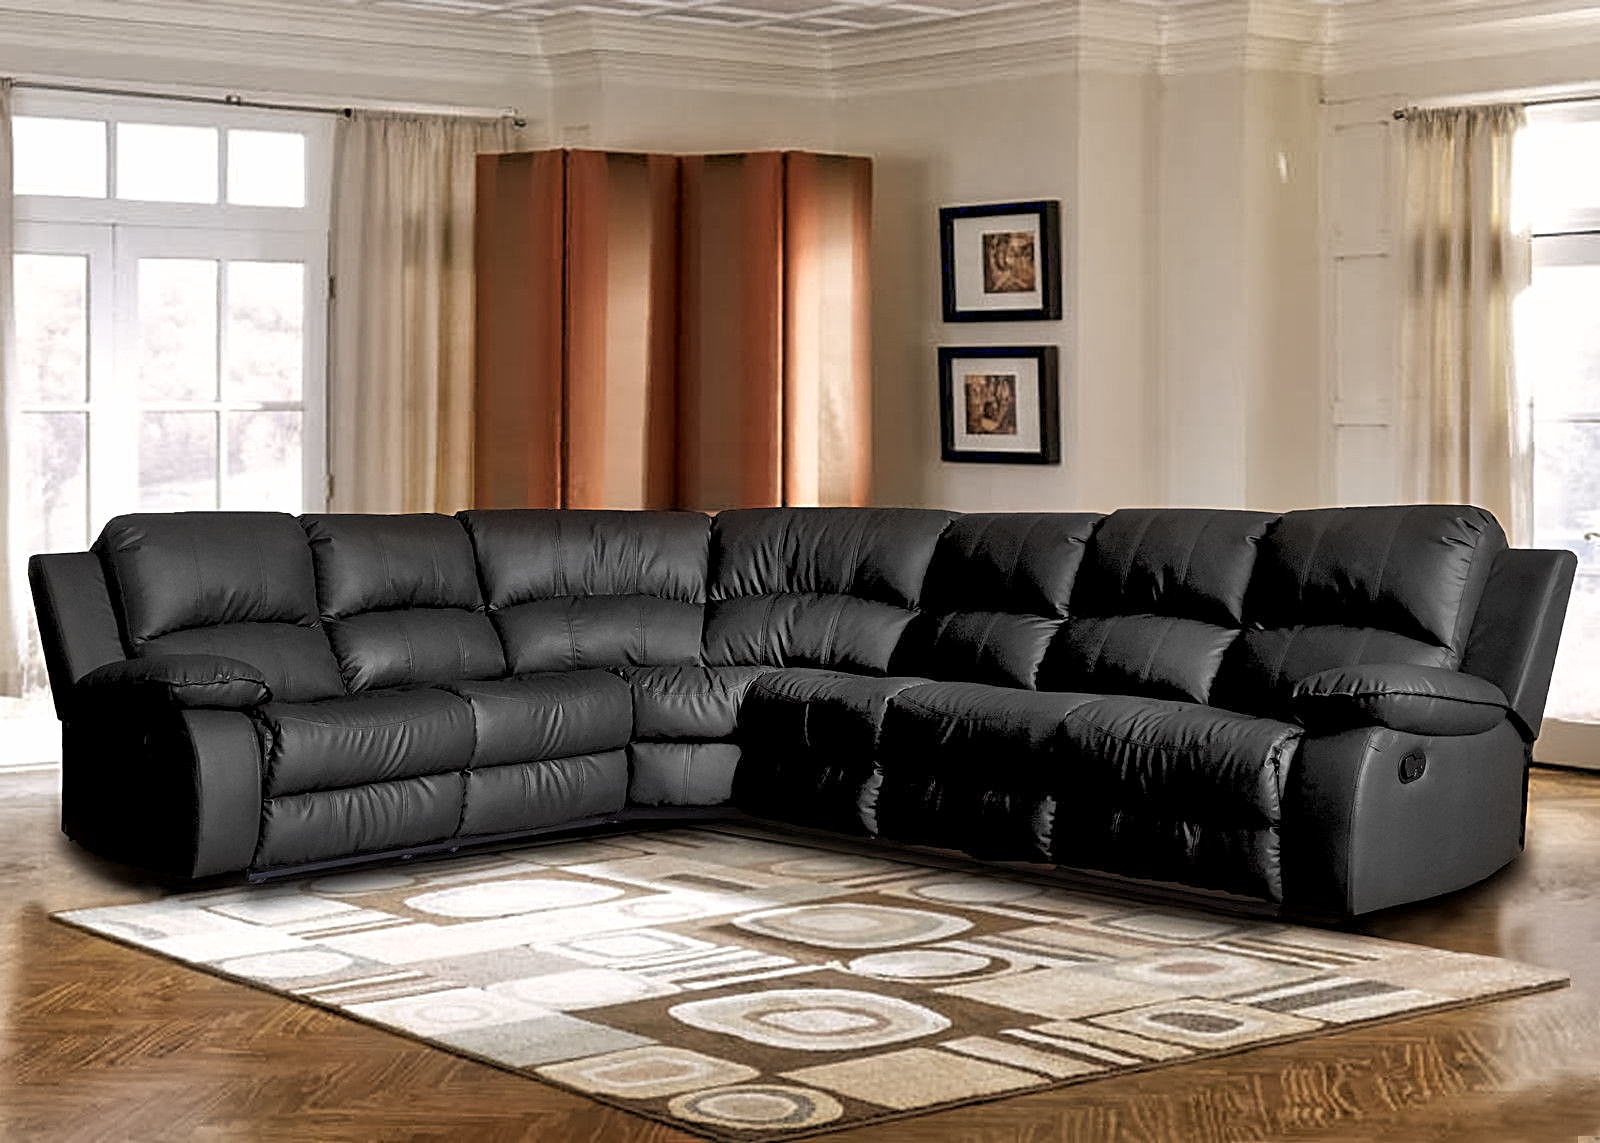 SECTIONAL BLACK BONDED LEATHER SOFA SET $1195.00